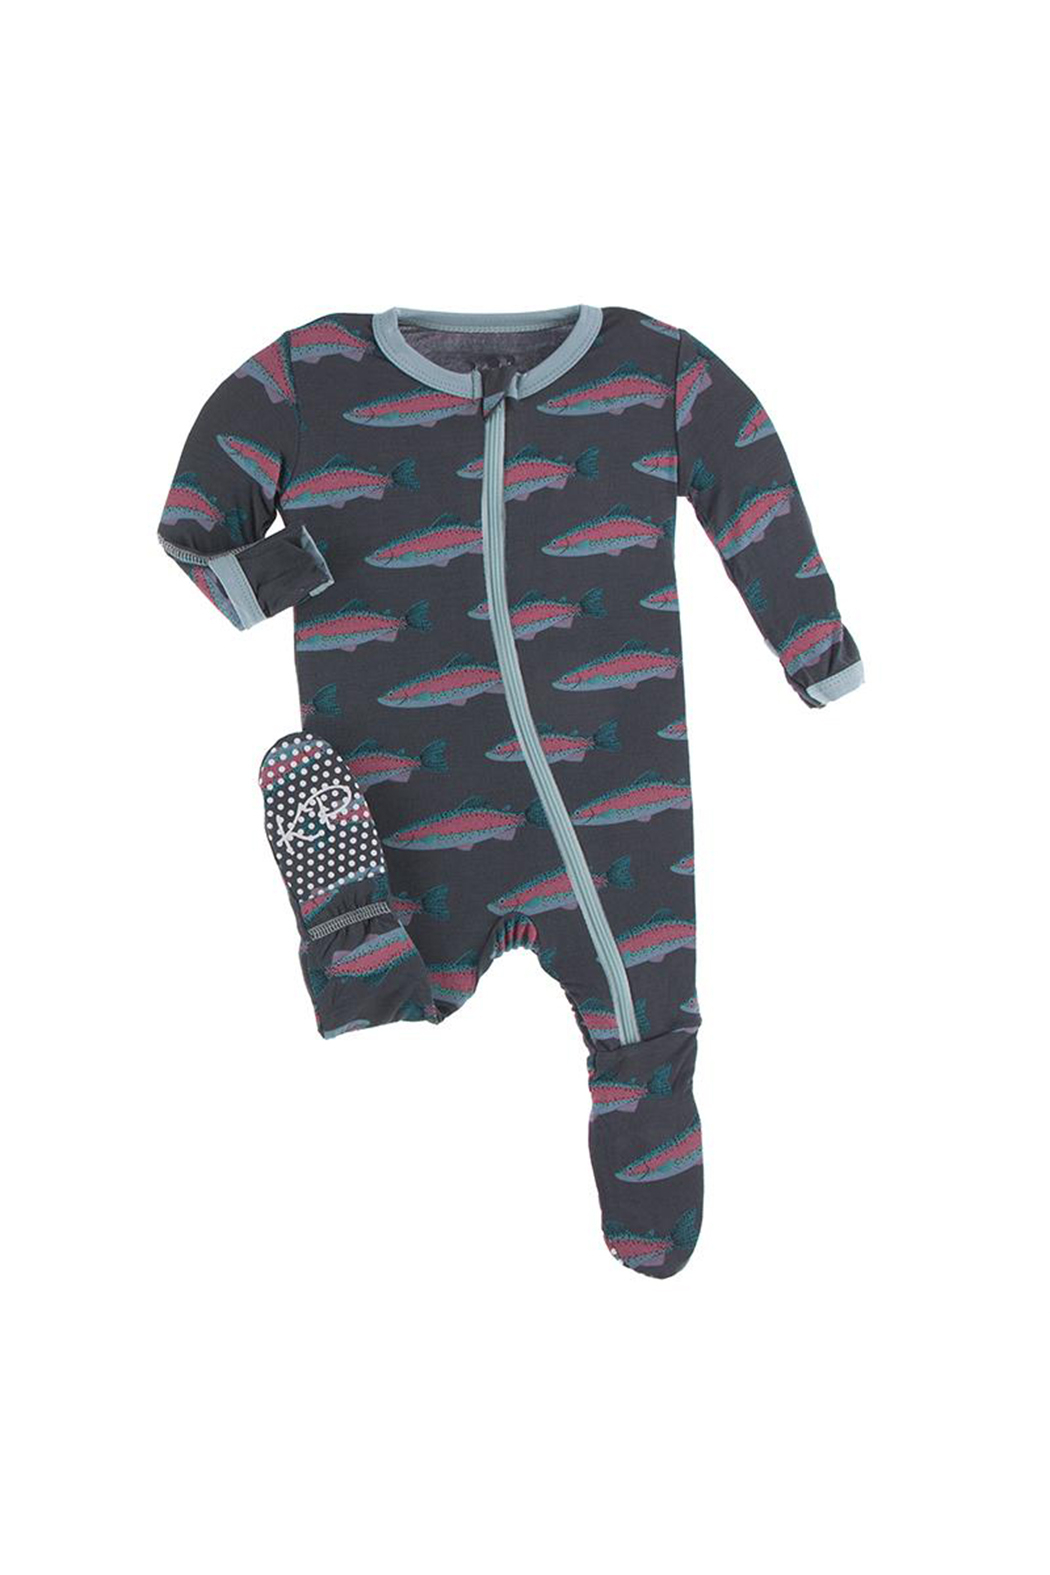 Kickee Pants Footie With Zipper - Stone Rainbow Trout - Main Image